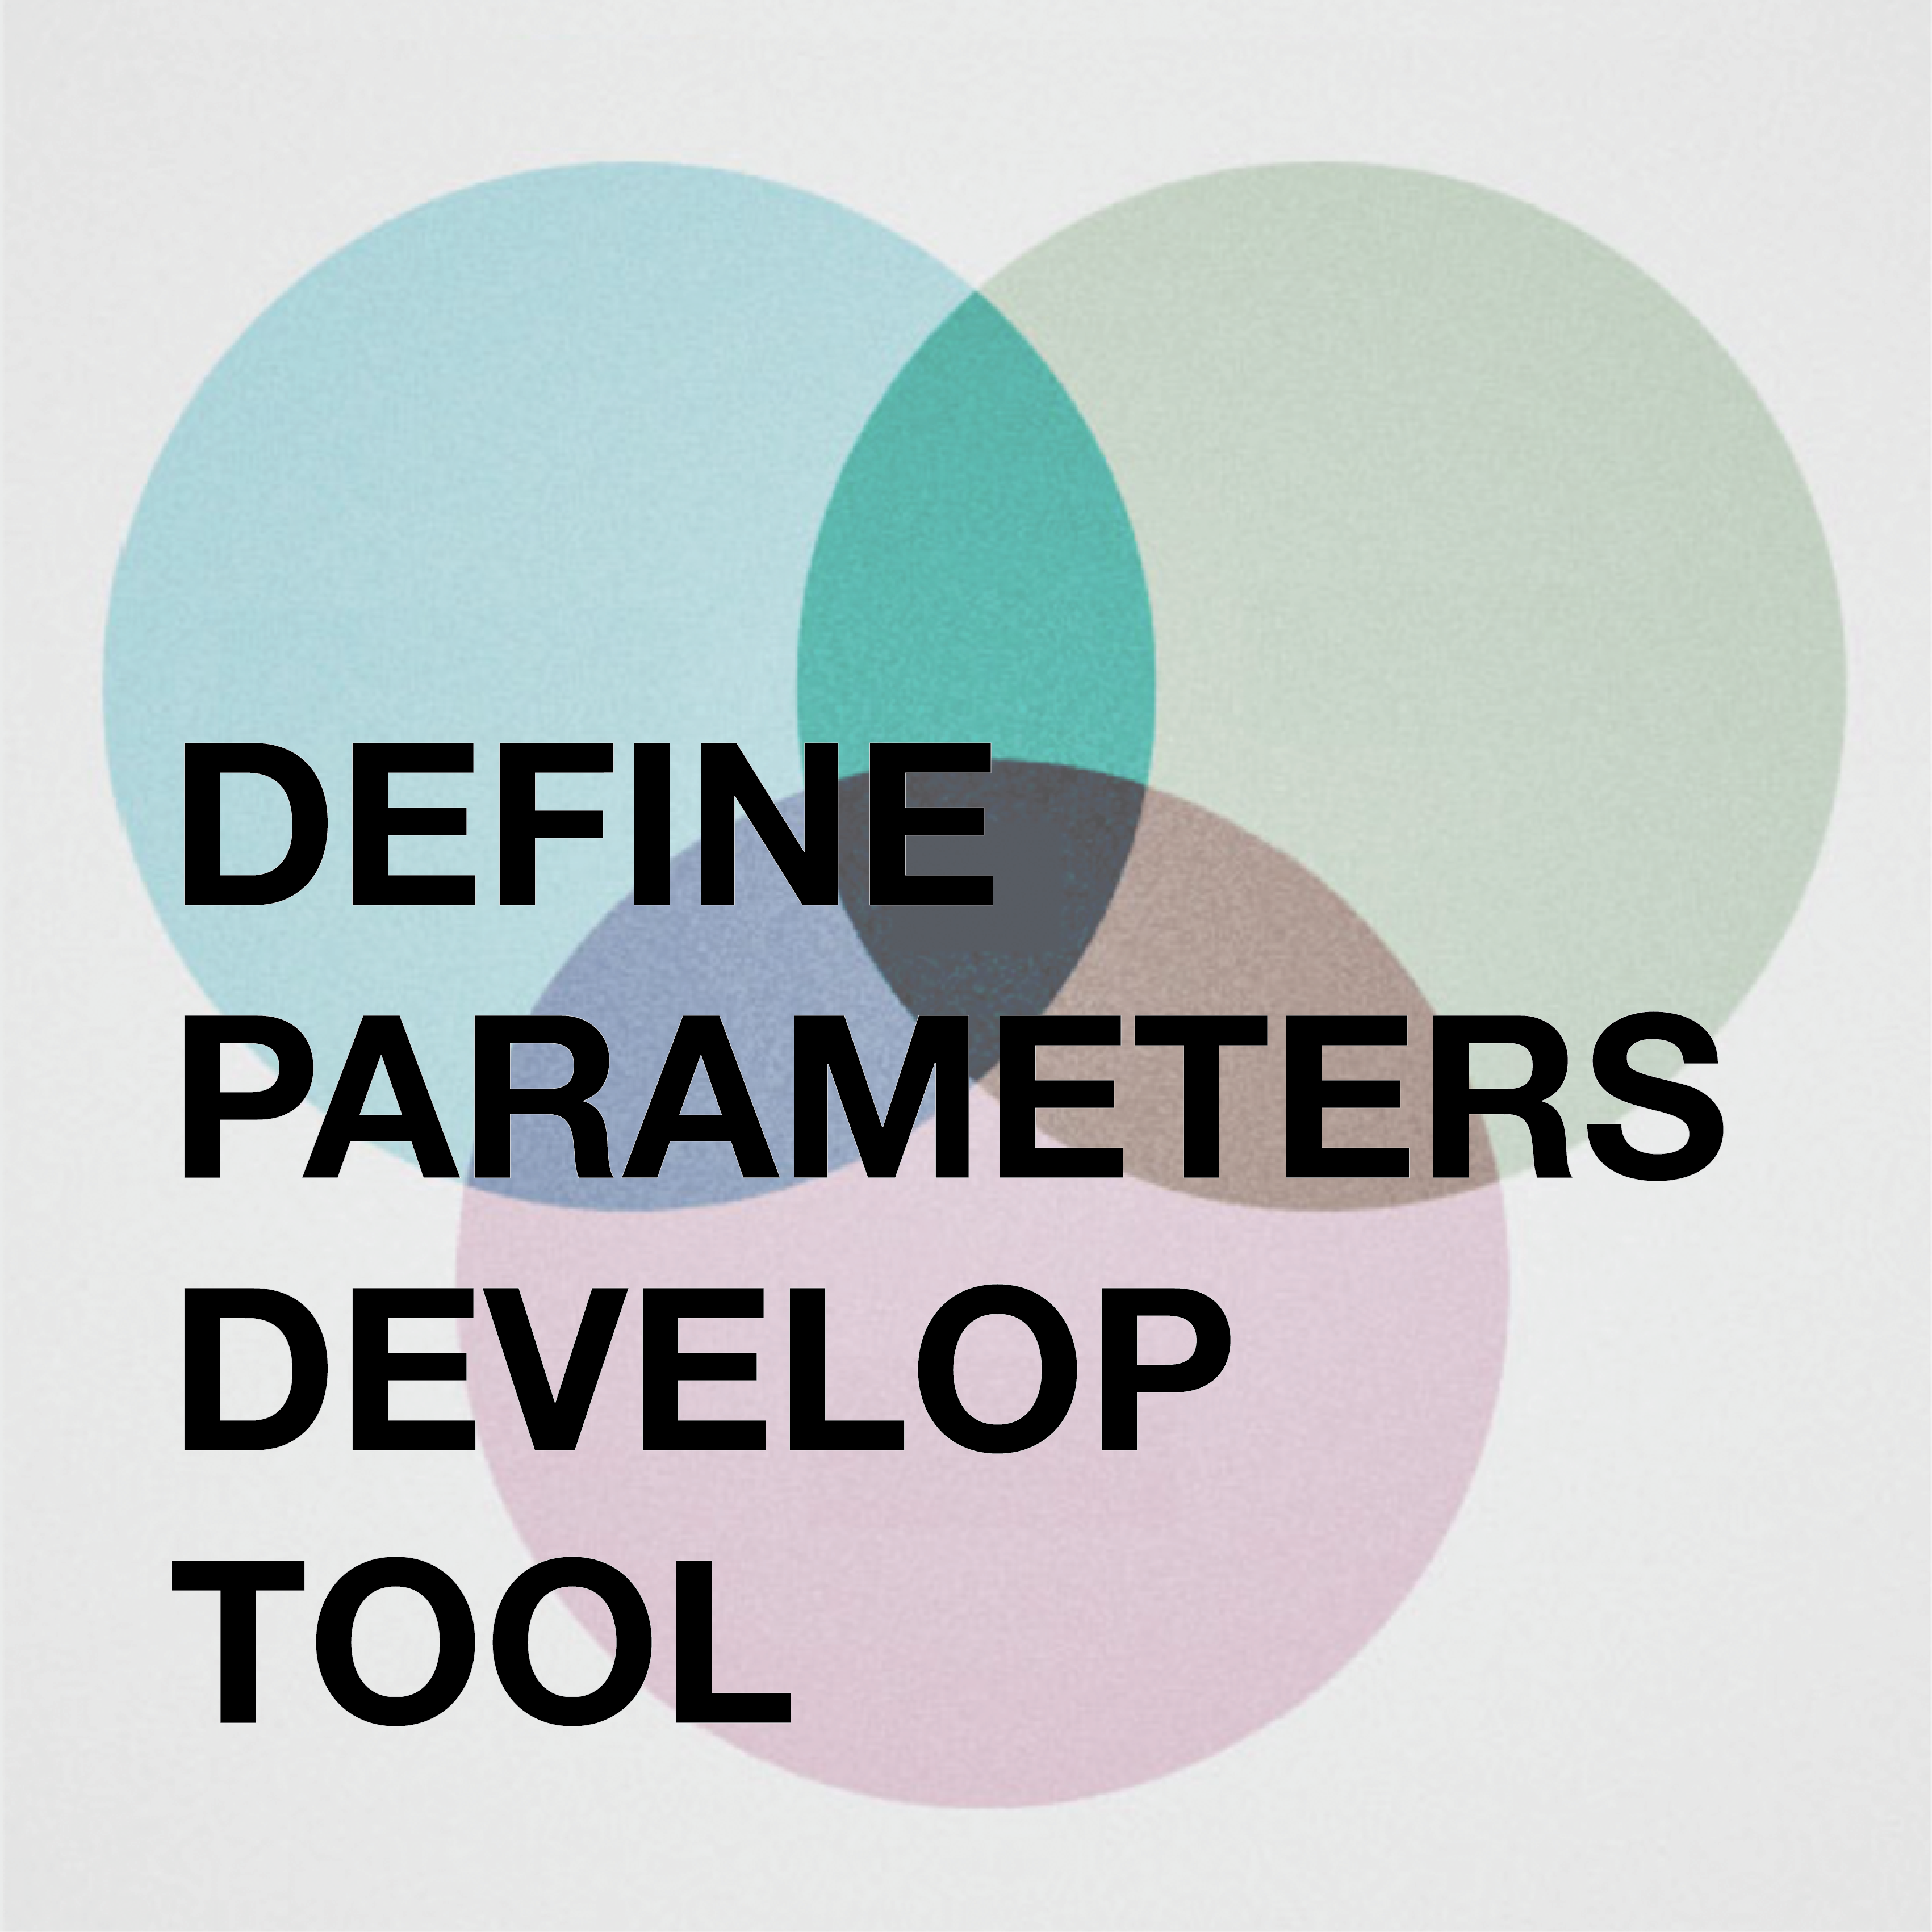 DESFINE PARAMETERS OF GOOD DESIGN